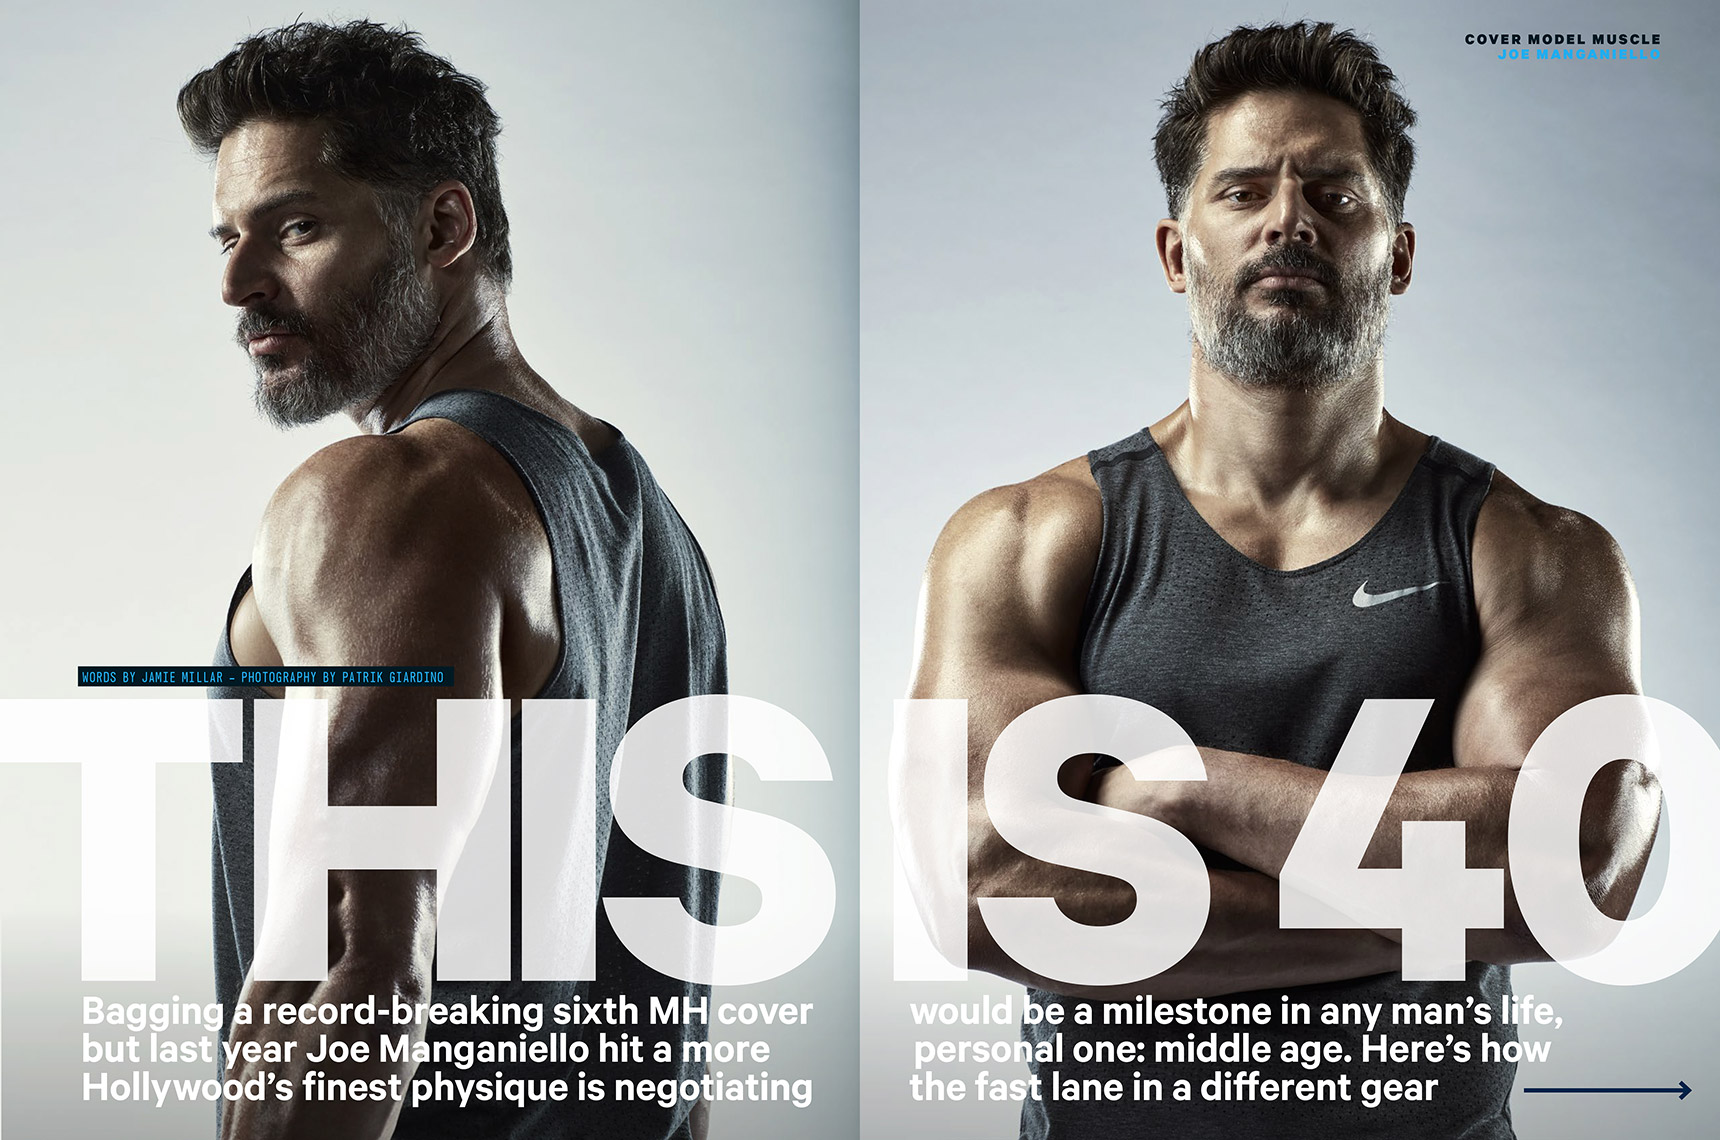 COVER-MODEL-MUSCLE_-Joe-Manganiello_pdf_spread-1